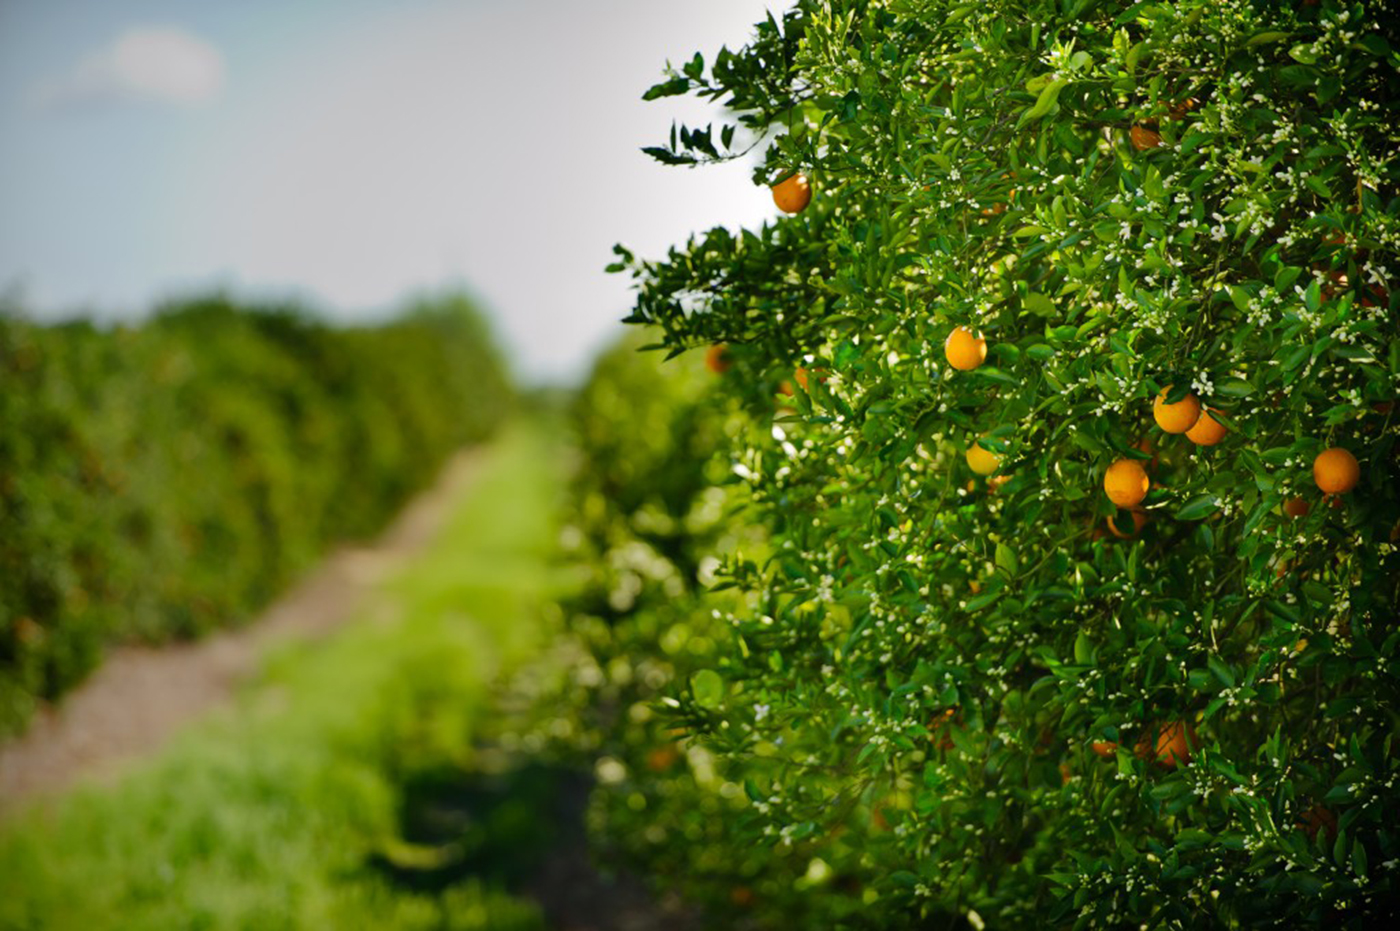 """Florida Citrus Commission chairman and Lake Wales citrus grower Ellis Hunt welcomed the fact the forecast came in higher than initial estimates. """"I'm looking forward to the day we can see this number start rising again,"""" Hunt said."""